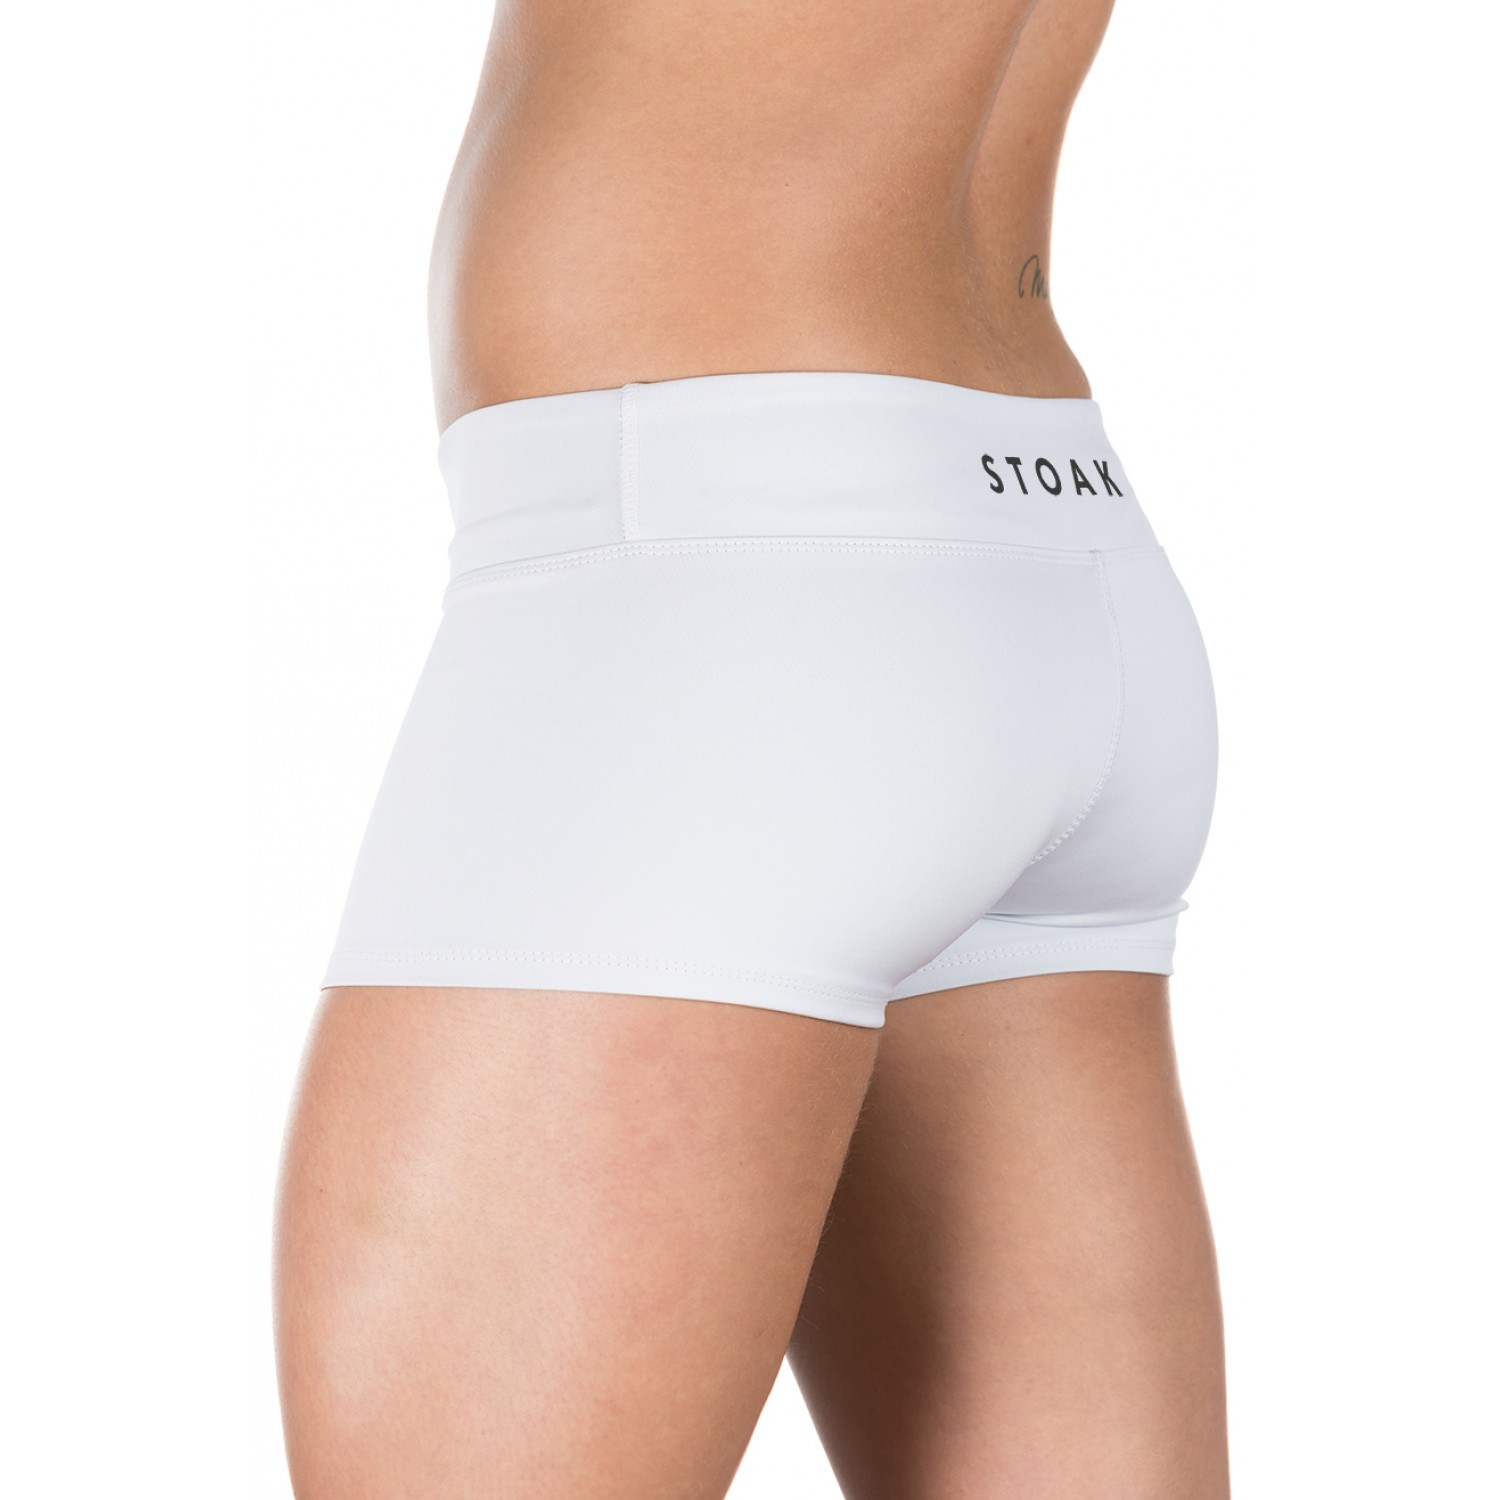 STOAK WHITE DIAMOND Athletic Shorts